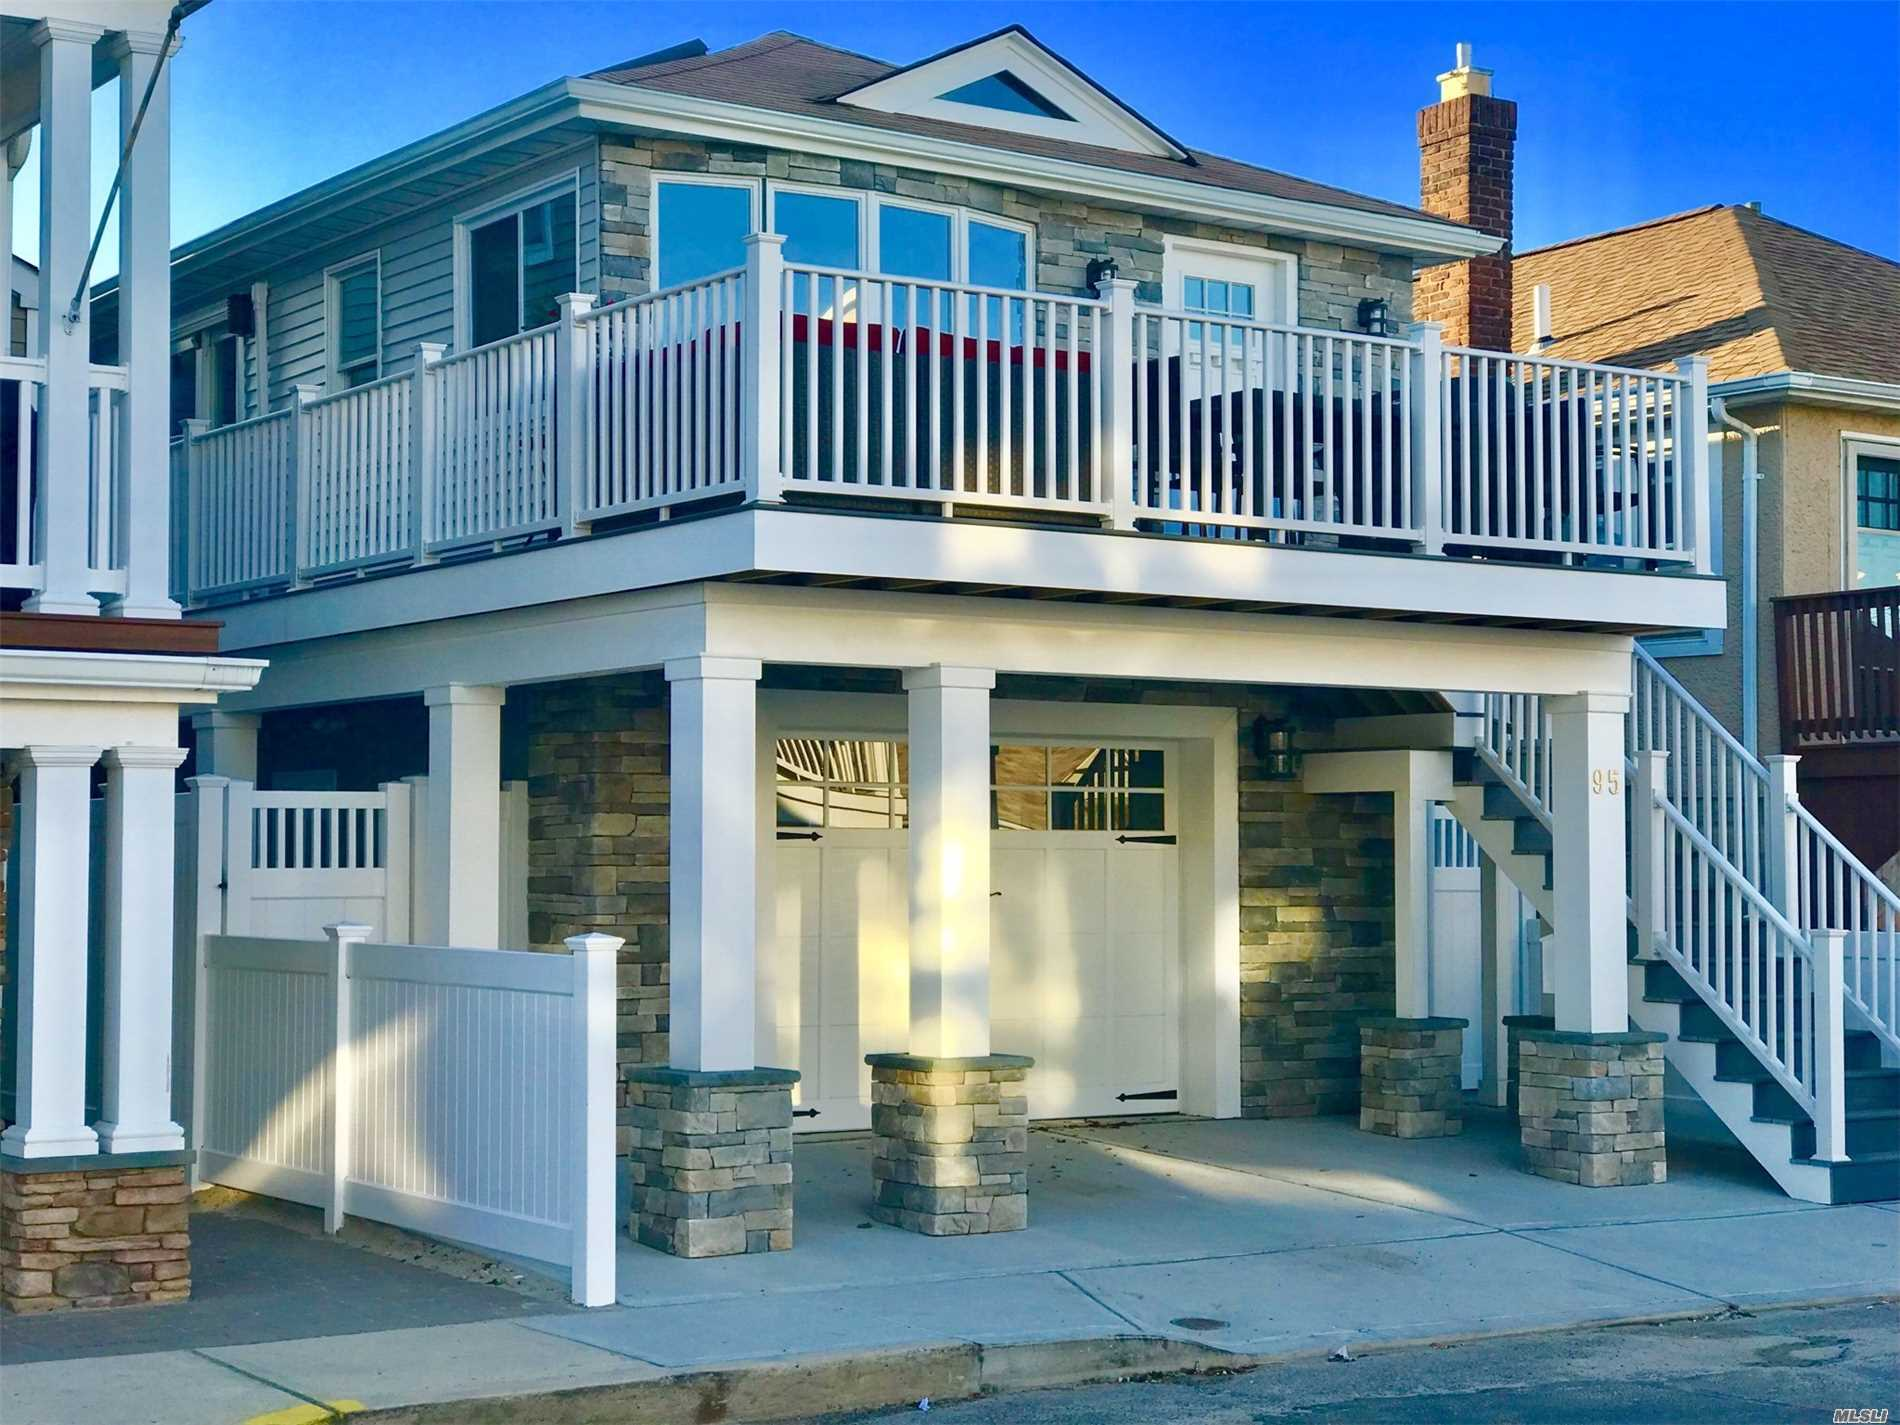 Stunning Contemporary Raised Ranch On Wide Block. Like New/Totally Renovated Inside&Out Beach House. Offering Top Of The Line Features Thru-Out. Impressive Grand Room Design With Vaulted Ceiling And Fireplace, Designer Kitchen & Bathroom. Fema Compliant Home W/Full First Level Garage Accommodating 4 Cars & Storage. Potential For 2nd Bedroom.